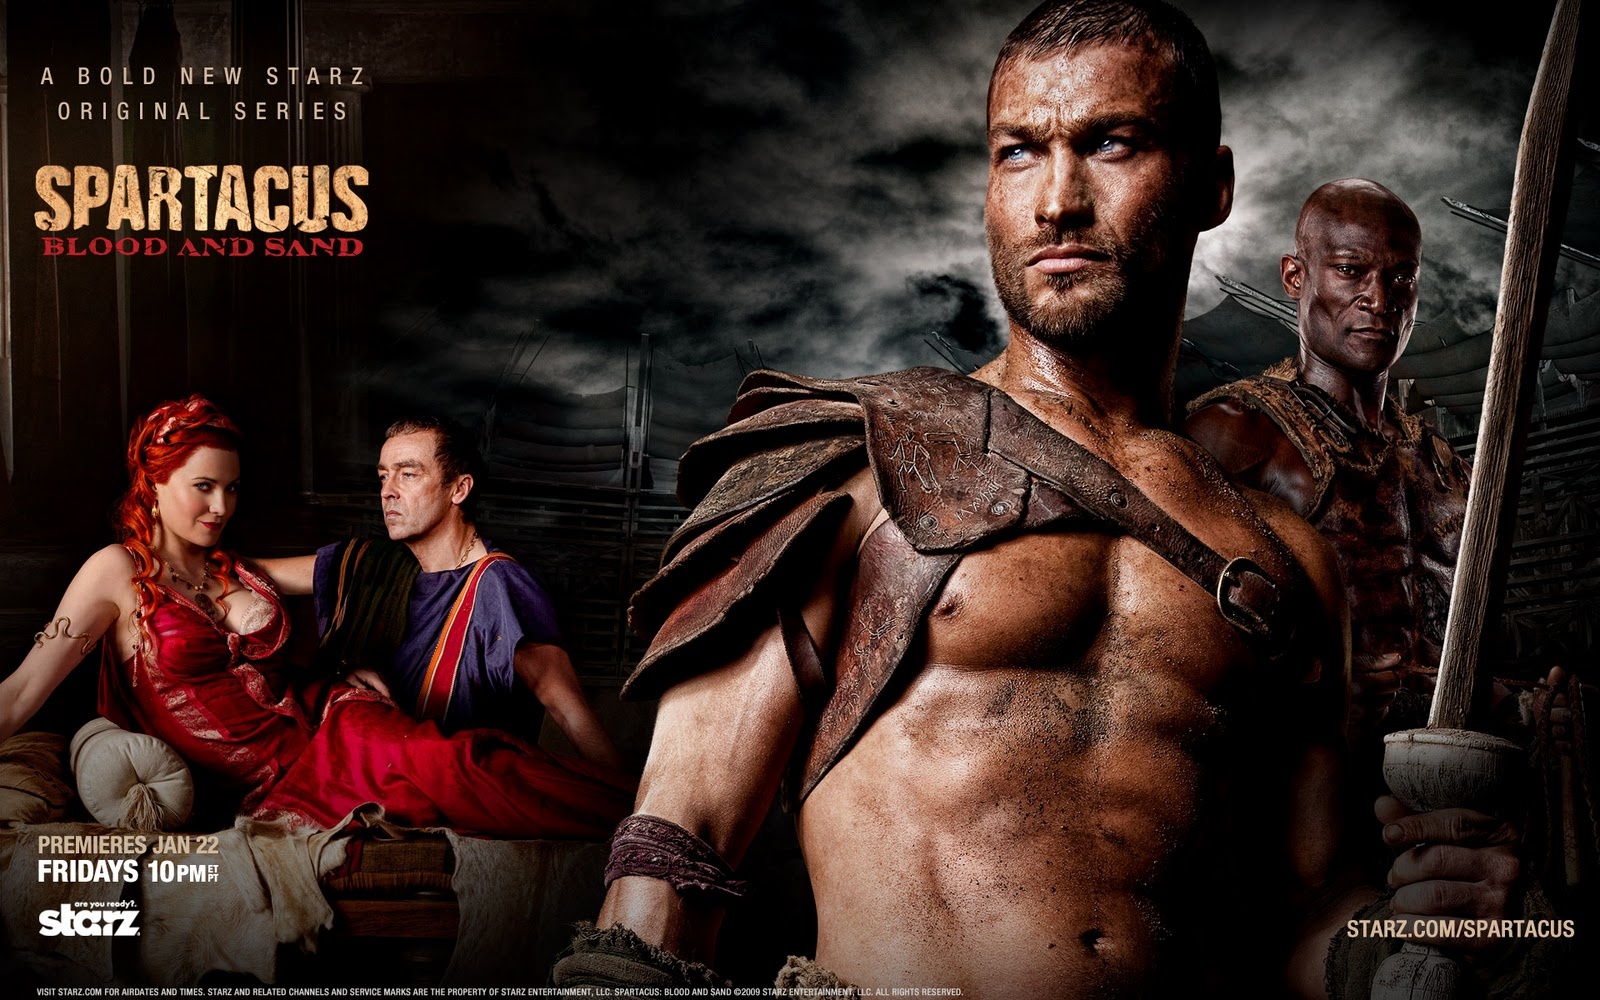 WATCH TV SHOWS FREE- LINKS AND VIDEOS: Watch Spartacus - Free Online ...